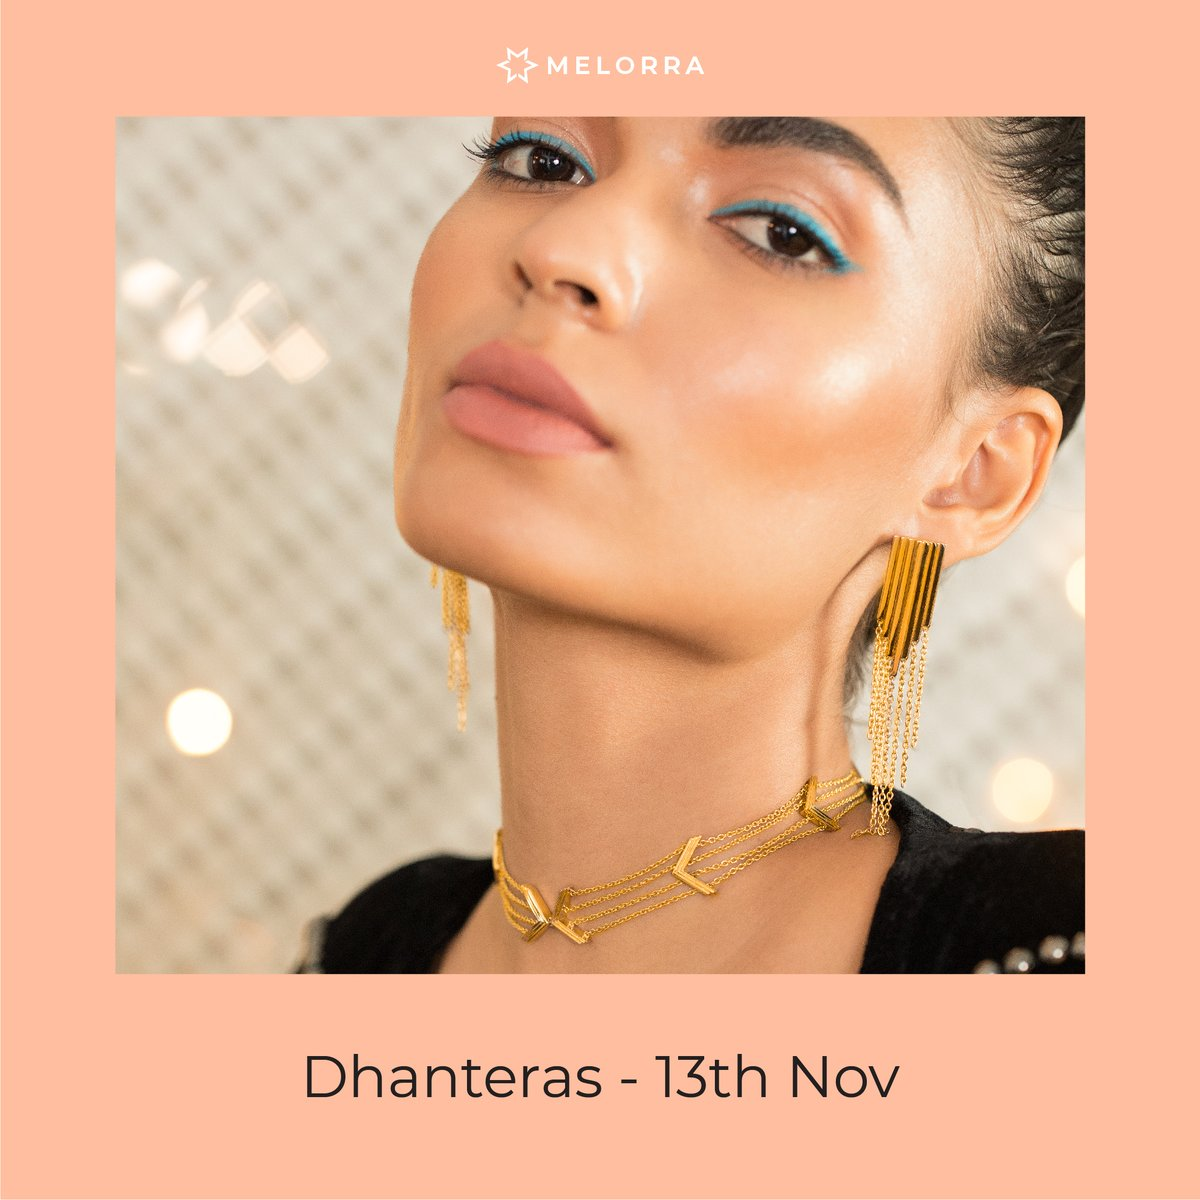 Give your festive look a whimsical update with bling and fringe. Check it out NOW >    P.S. This Dhanteras 13th Nov, bring home some glam and gold!  #Melorra #FineJewellery #LightweightJewellery #EverydayFineJewellery #ExtraFringeCollection #ShopOnline